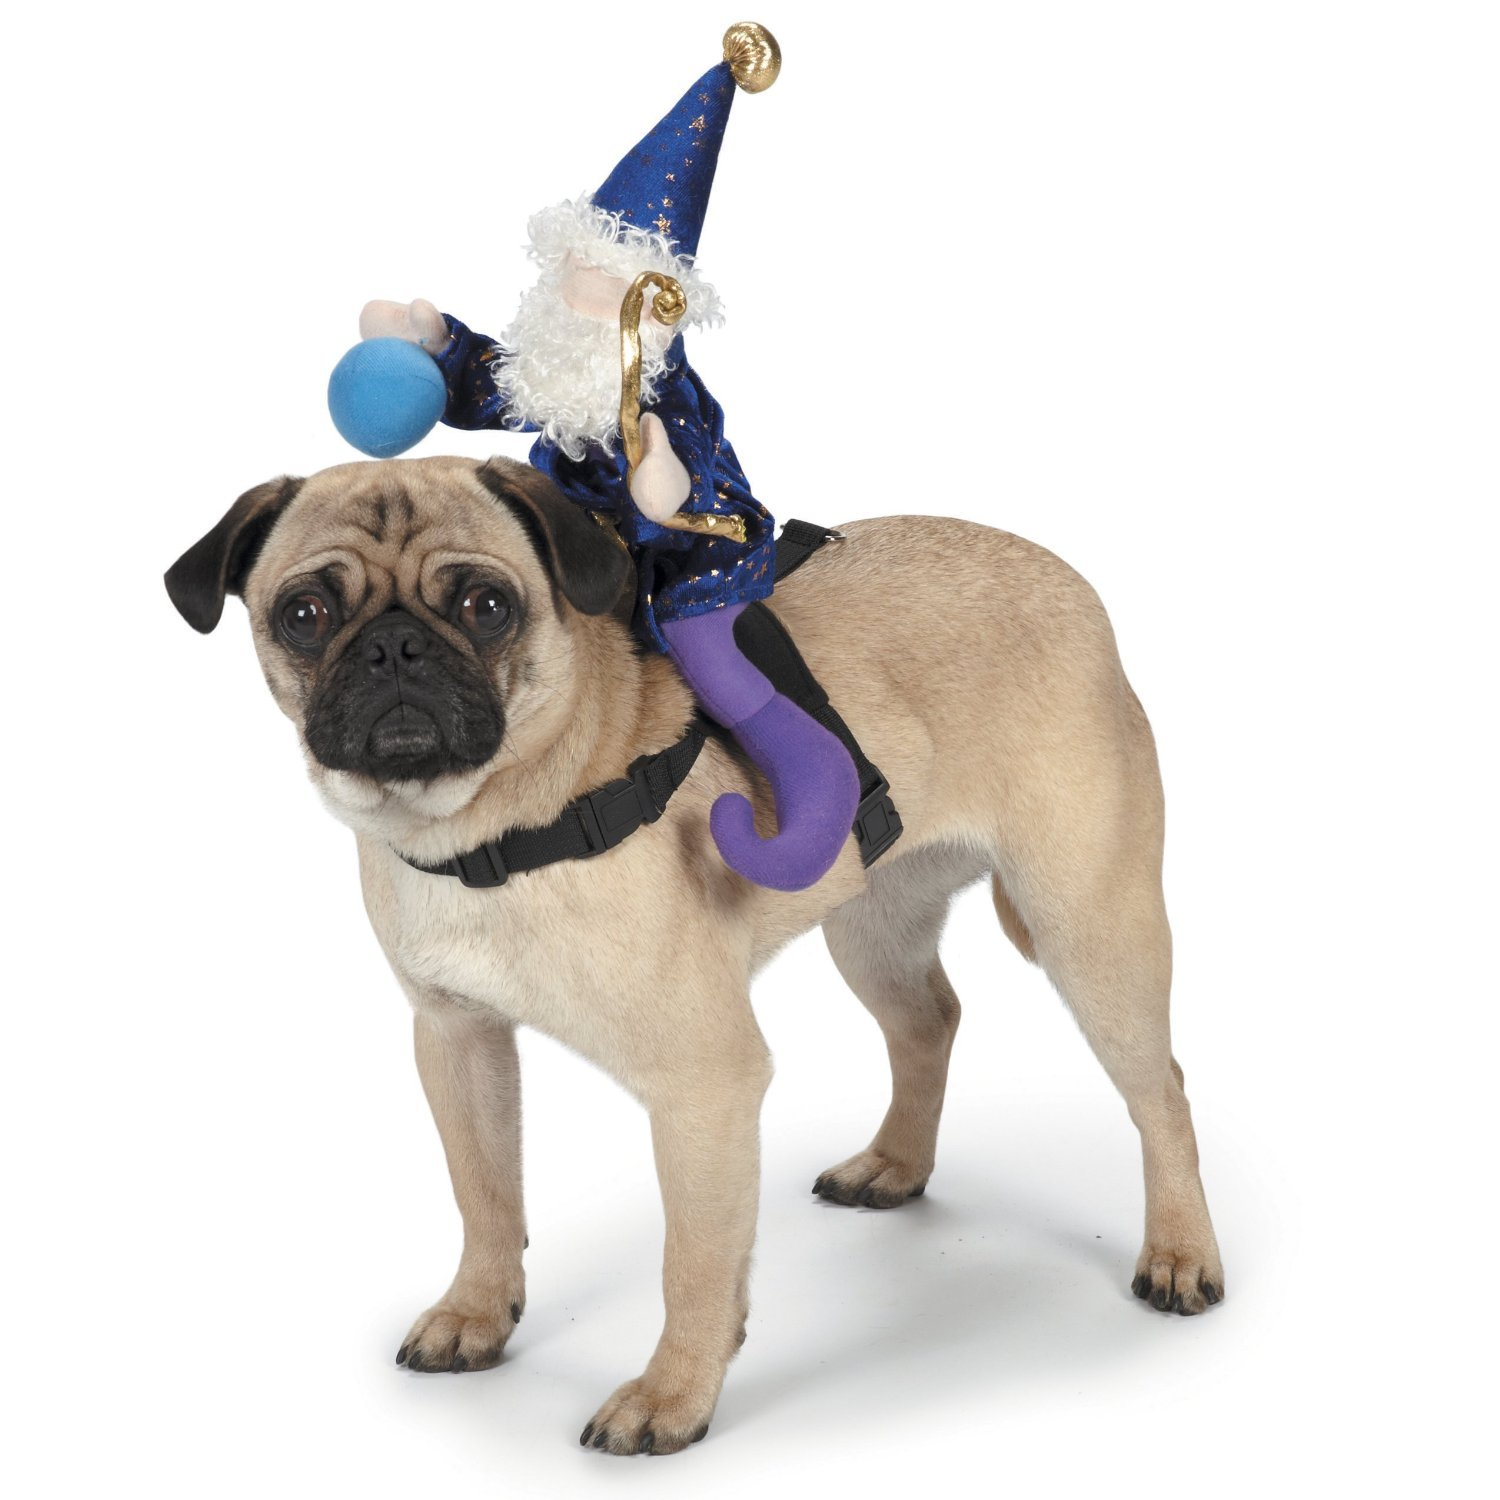 Amazon.com  Zack u0026 Zoey Wizard Saddle Dog Costume Medium  Pet Supplies  sc 1 st  Amazon.com : jockey dog rider pet costume  - Germanpascual.Com